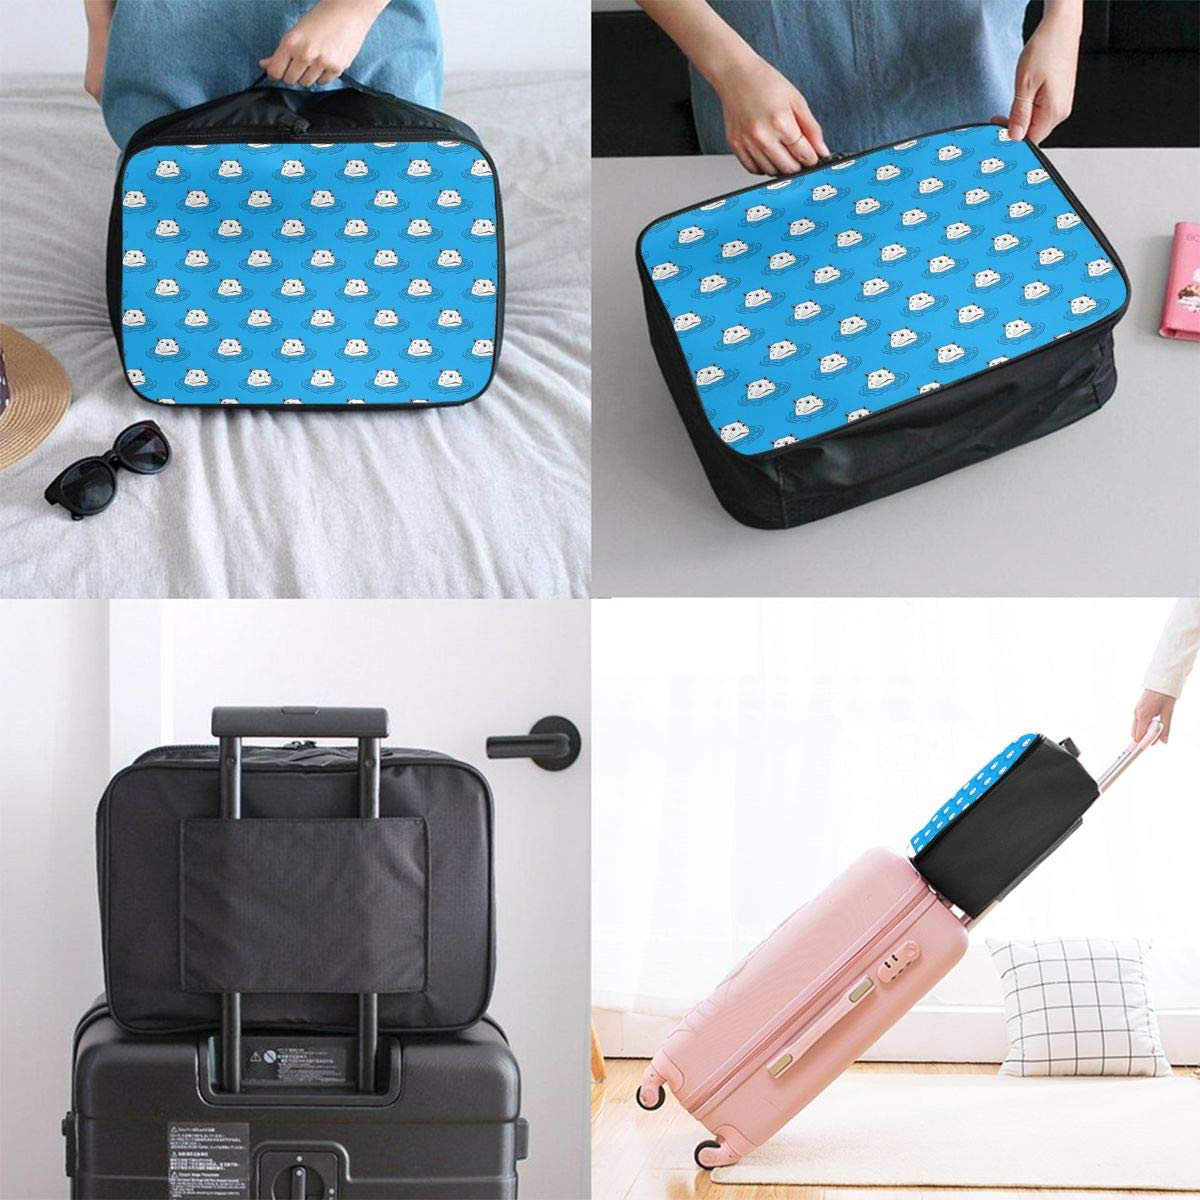 YueLJB Hippo in Water Pool Lightweight Large Capacity Portable Luggage Bag Travel Duffel Bag Storage Carry Luggage Duffle Tote Bag